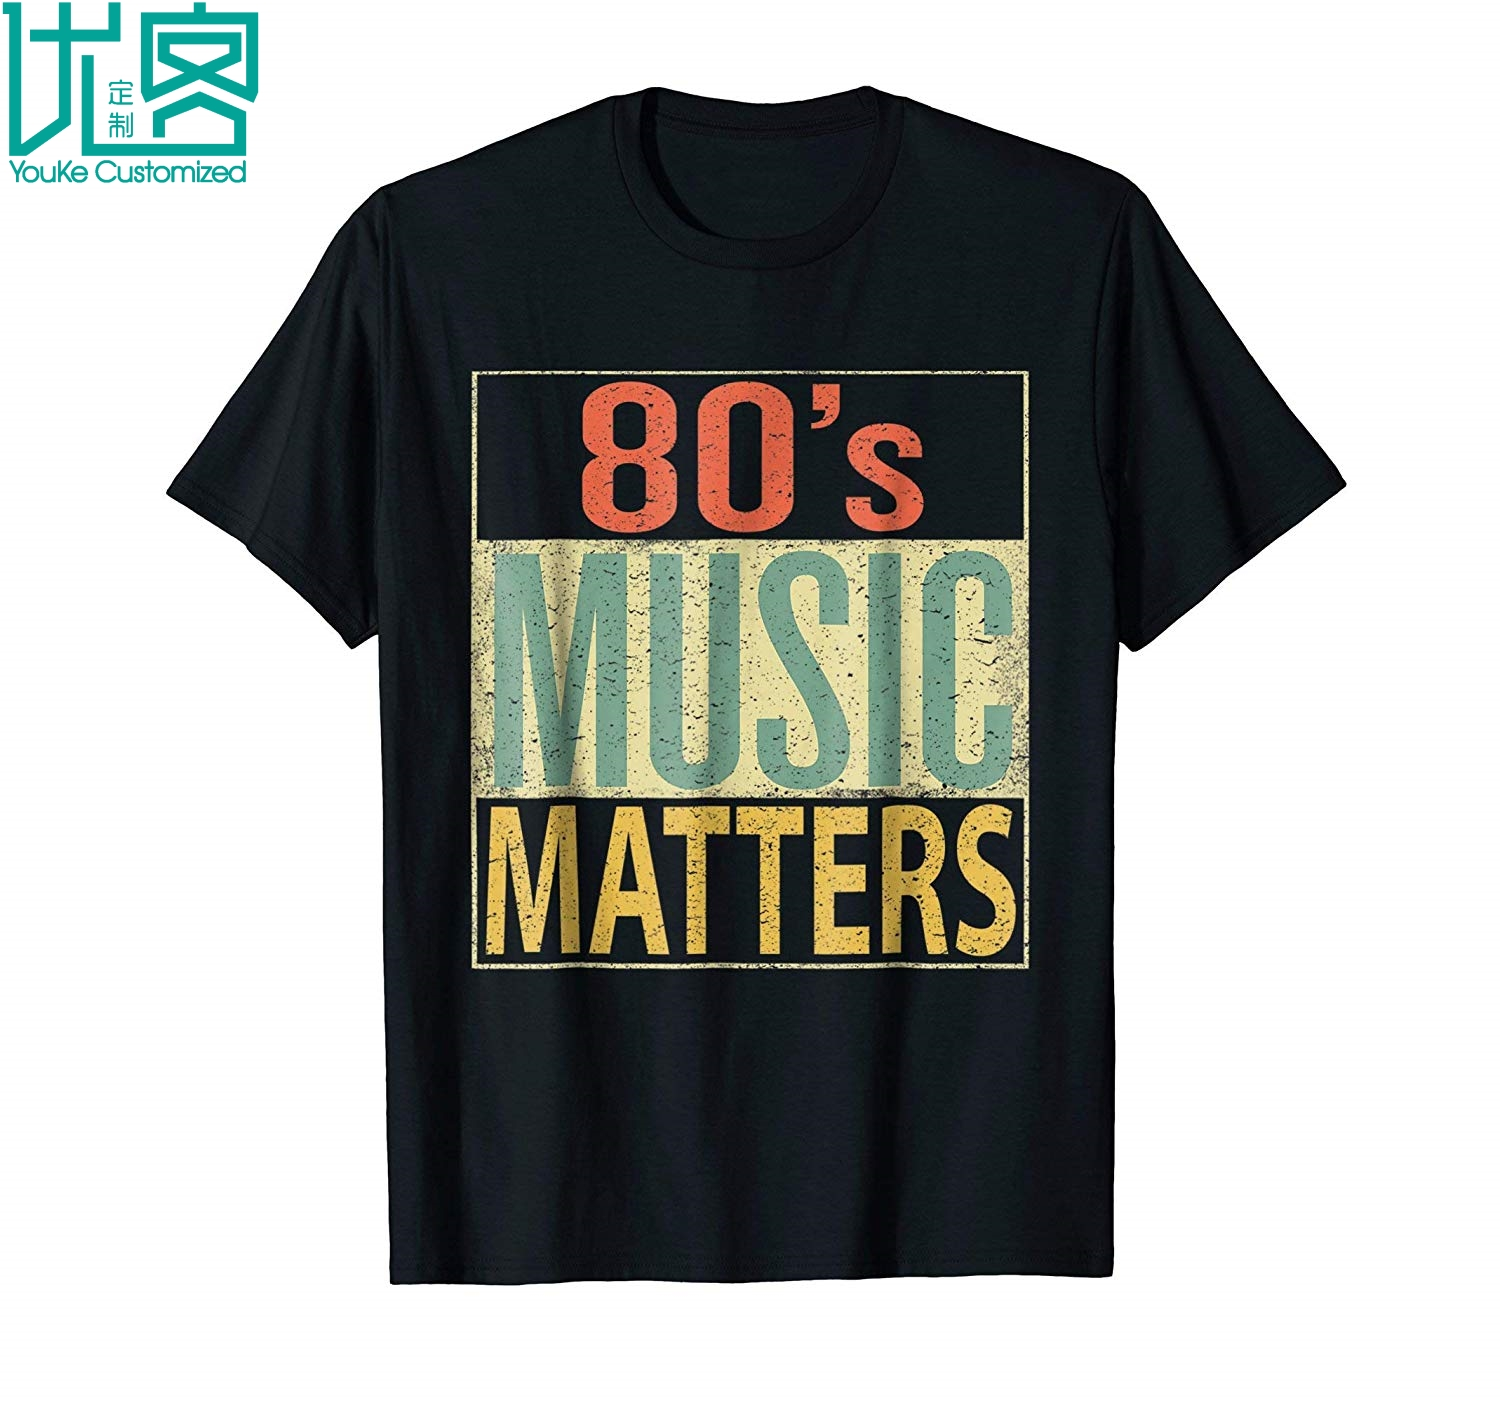 Gildan Brand 80s Music Matters Shirt Vintage 80s Style Retro Colors Tee 2019 Summer Men's Short Sleeve T-Shirt image